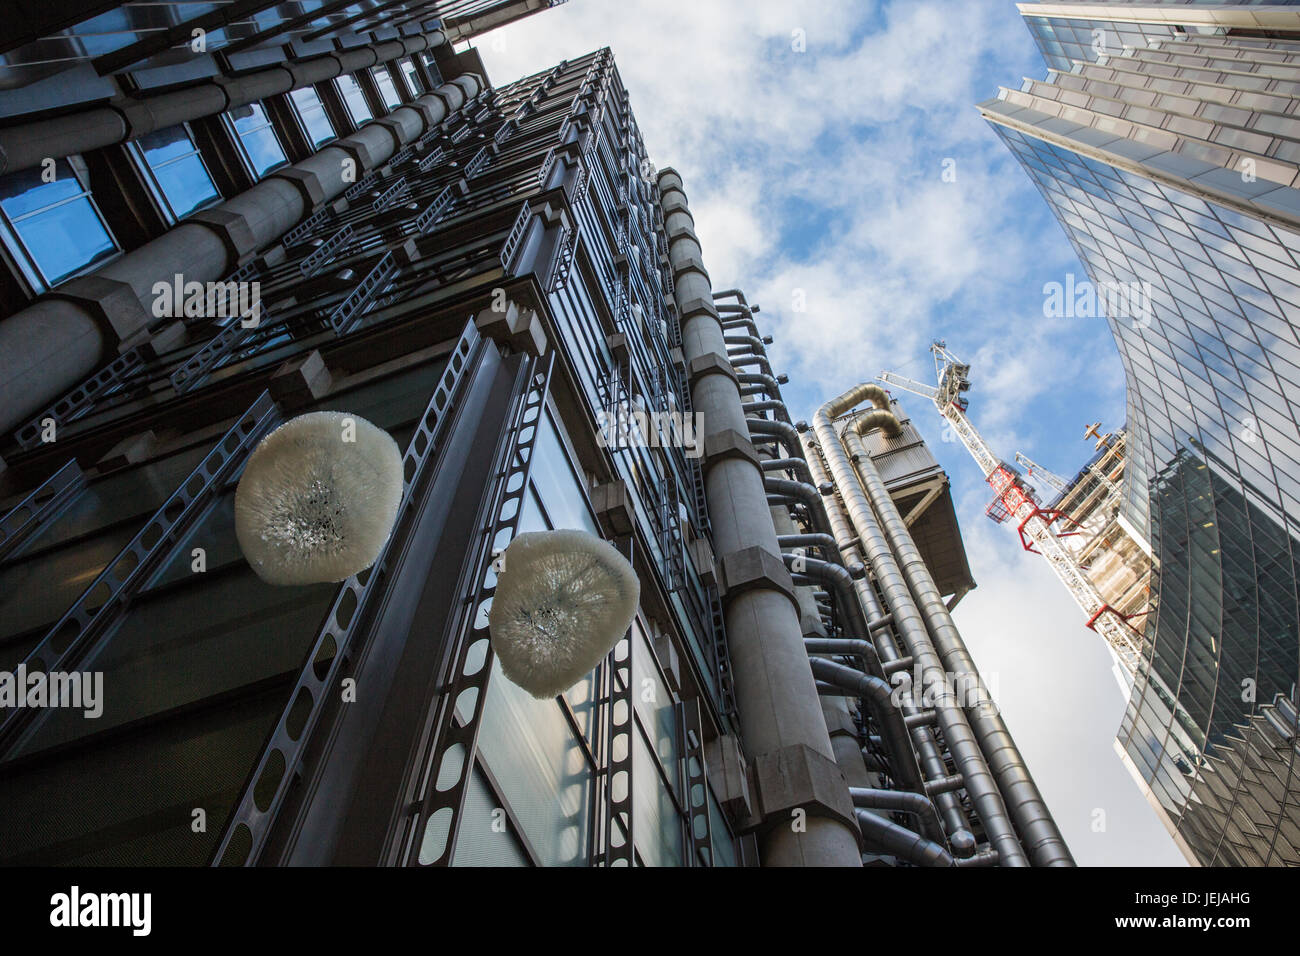 London, UK. 25th June, 2017. 'Support for a Cloud' (2017) by Mhairi Vari, exhibits no. 10, 12 and 13 of - Stock Image